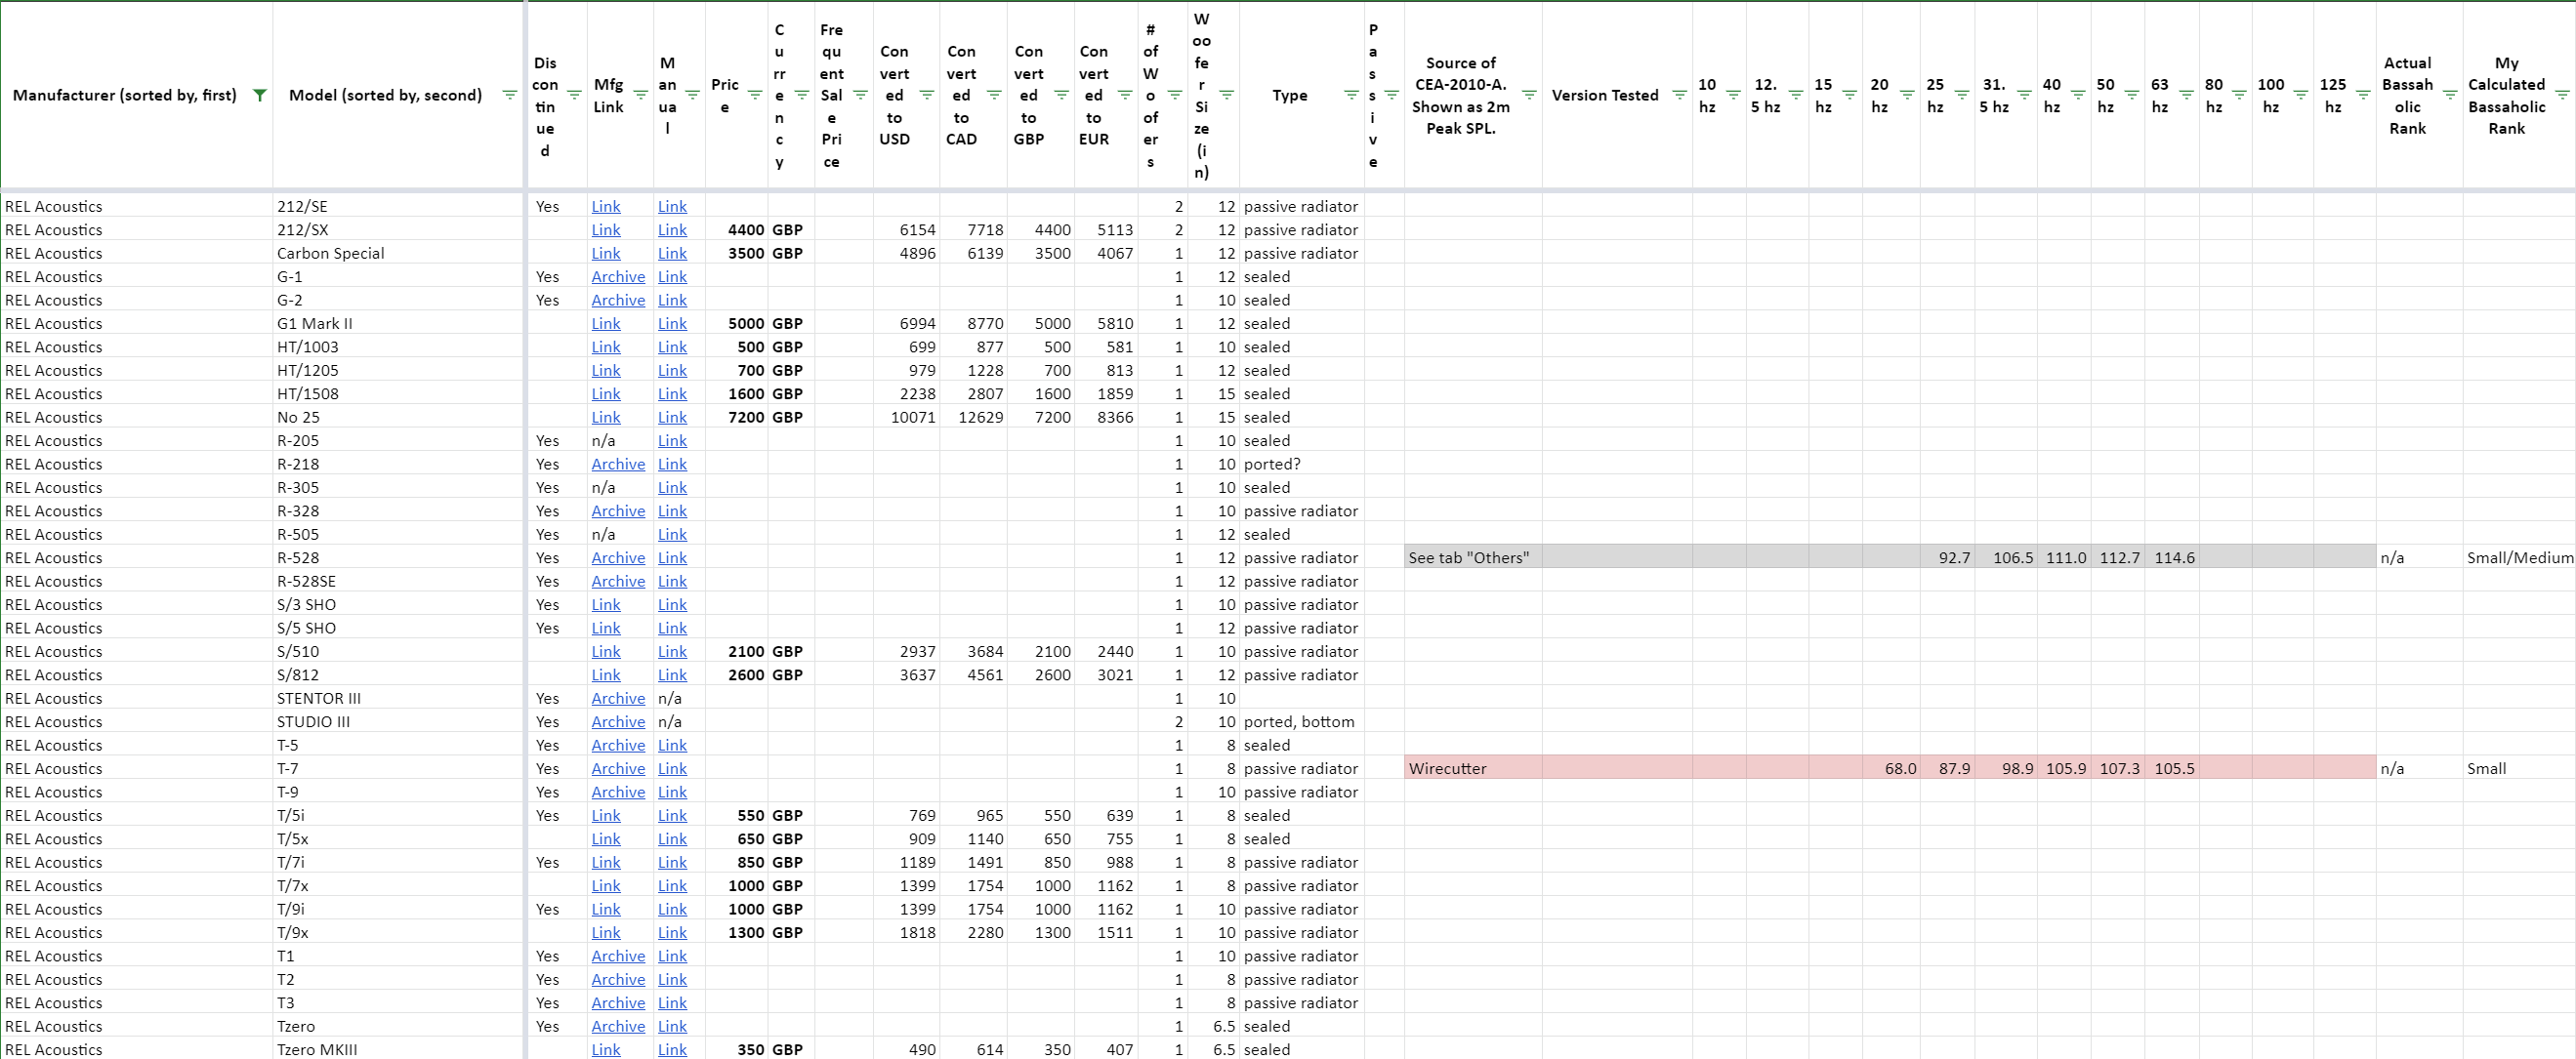 2021-04-19 12_32_13-Subwoofer Comparison (by @sweetchaos) - Google Sheets.png